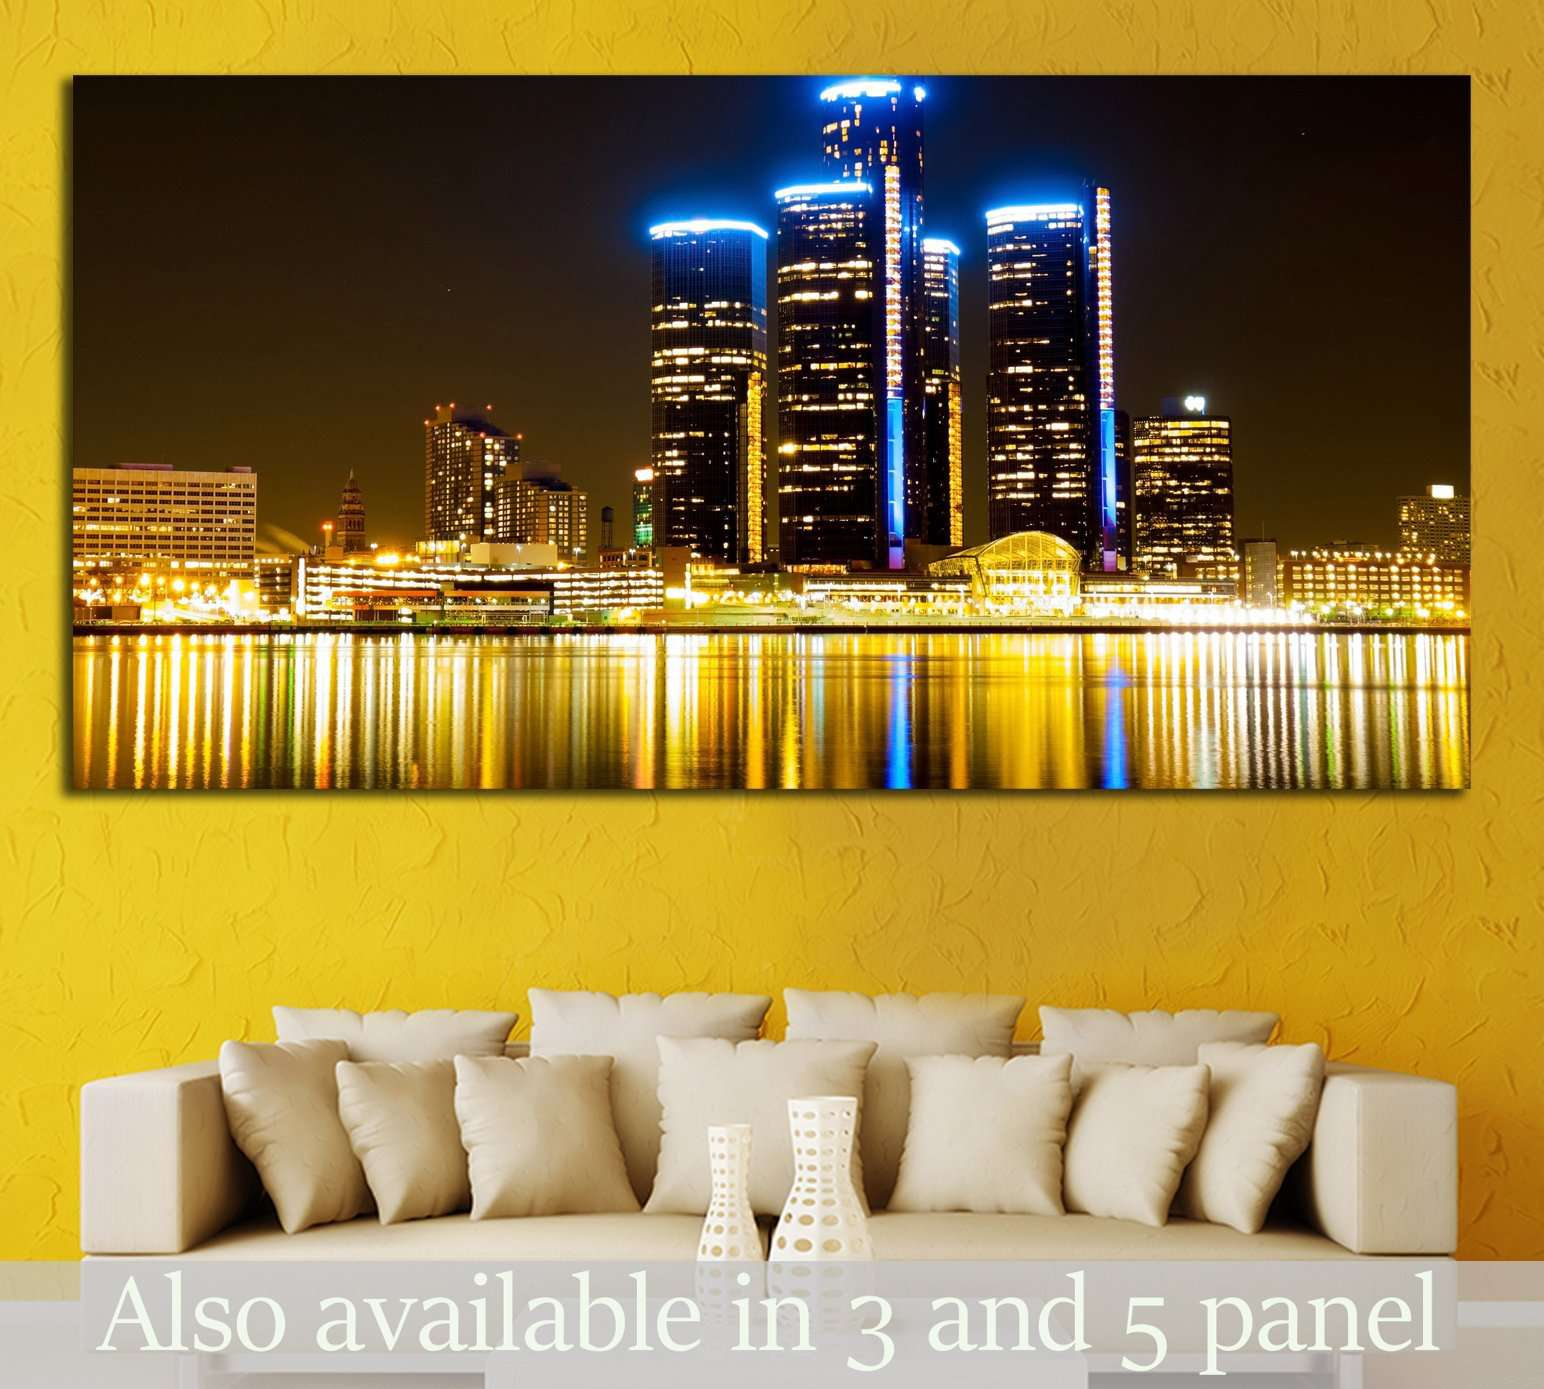 Night Cityscapes & Skylines Wall Art at Zellart Canvas Arts